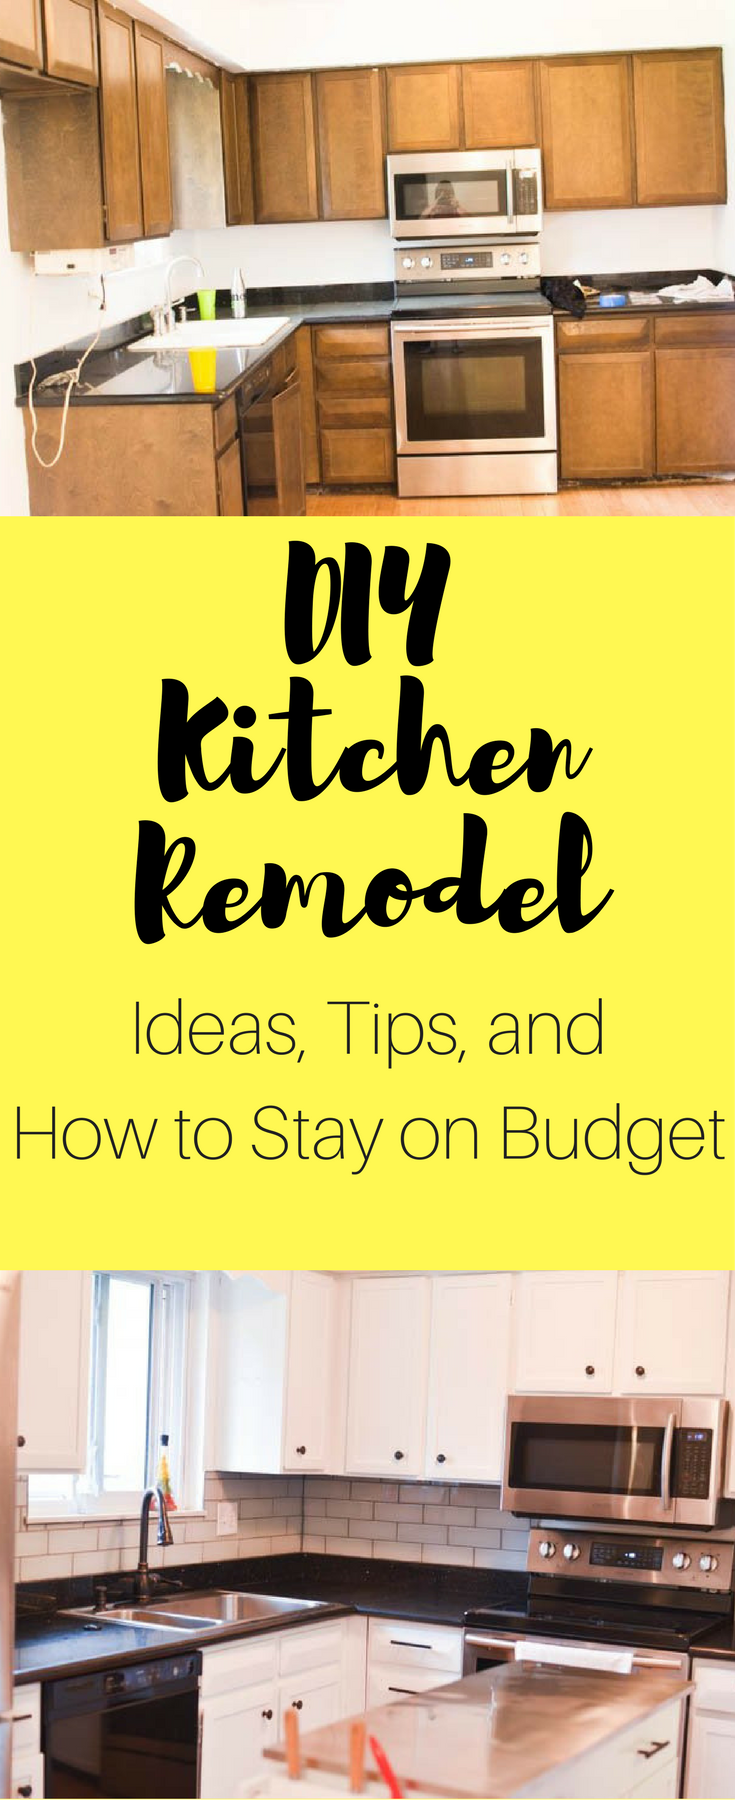 DIY Kitchen Remodel Ideas / DIY Kitchen Remodel / Kitchen Remodel / DIY Kitchen Renovation / Budget Remodel / Budget Renovation / Small Kitchen / Small Kitchen Ideas